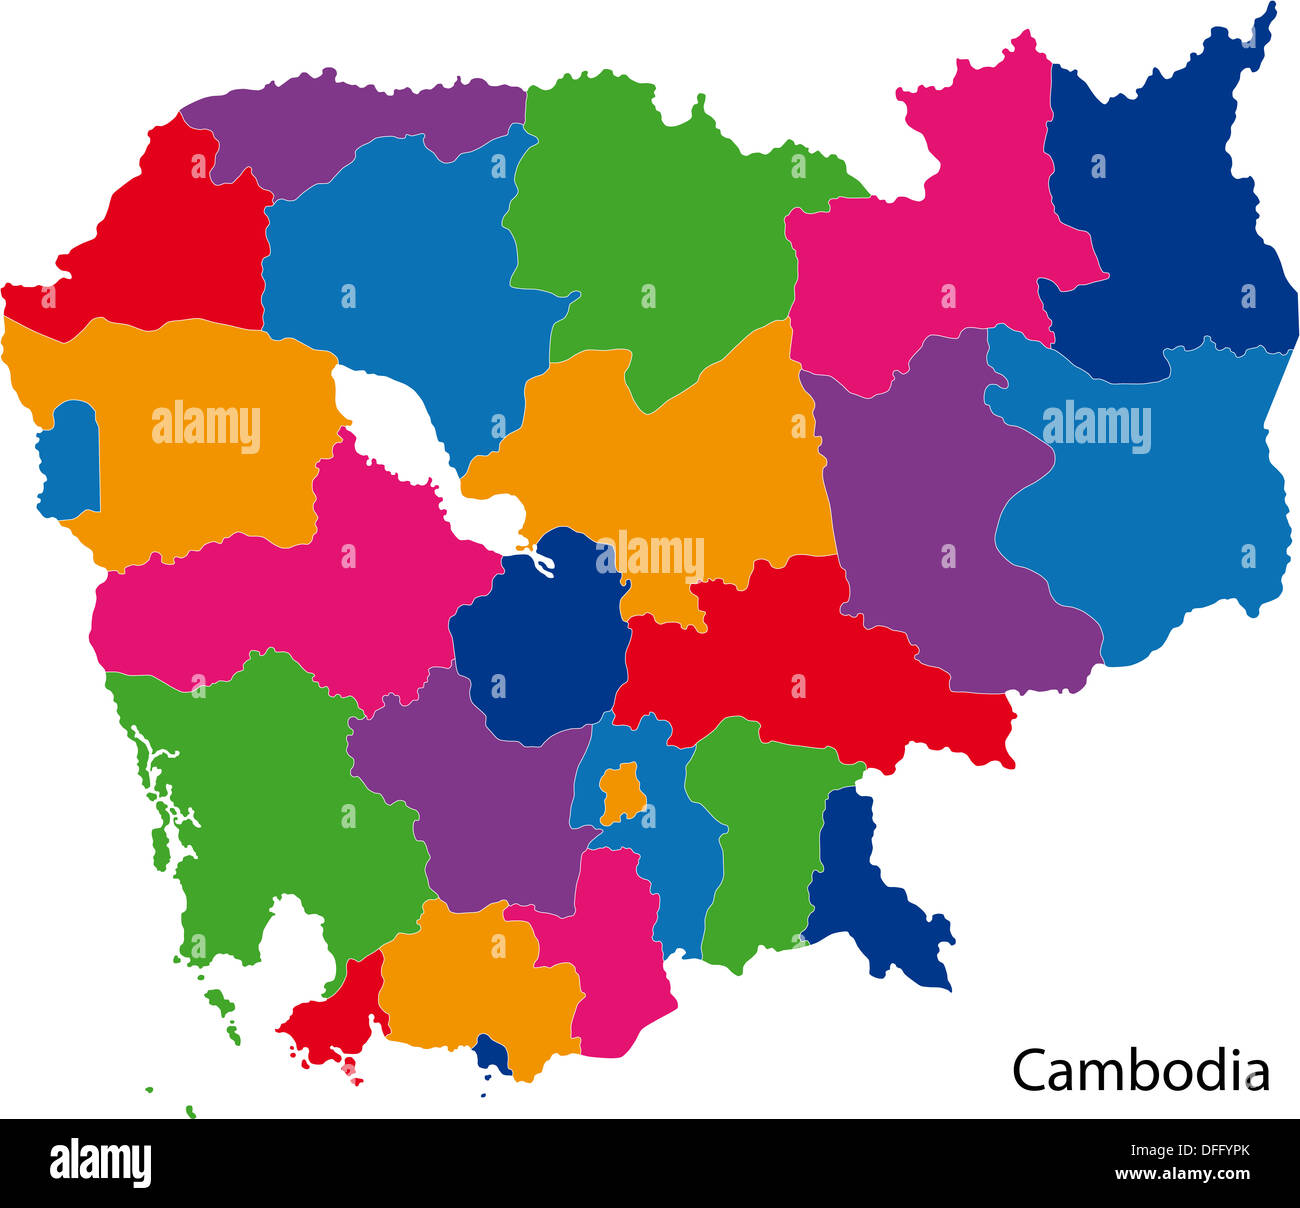 Colorful Cambodia map Stock Photo: 61202027 - Alamy